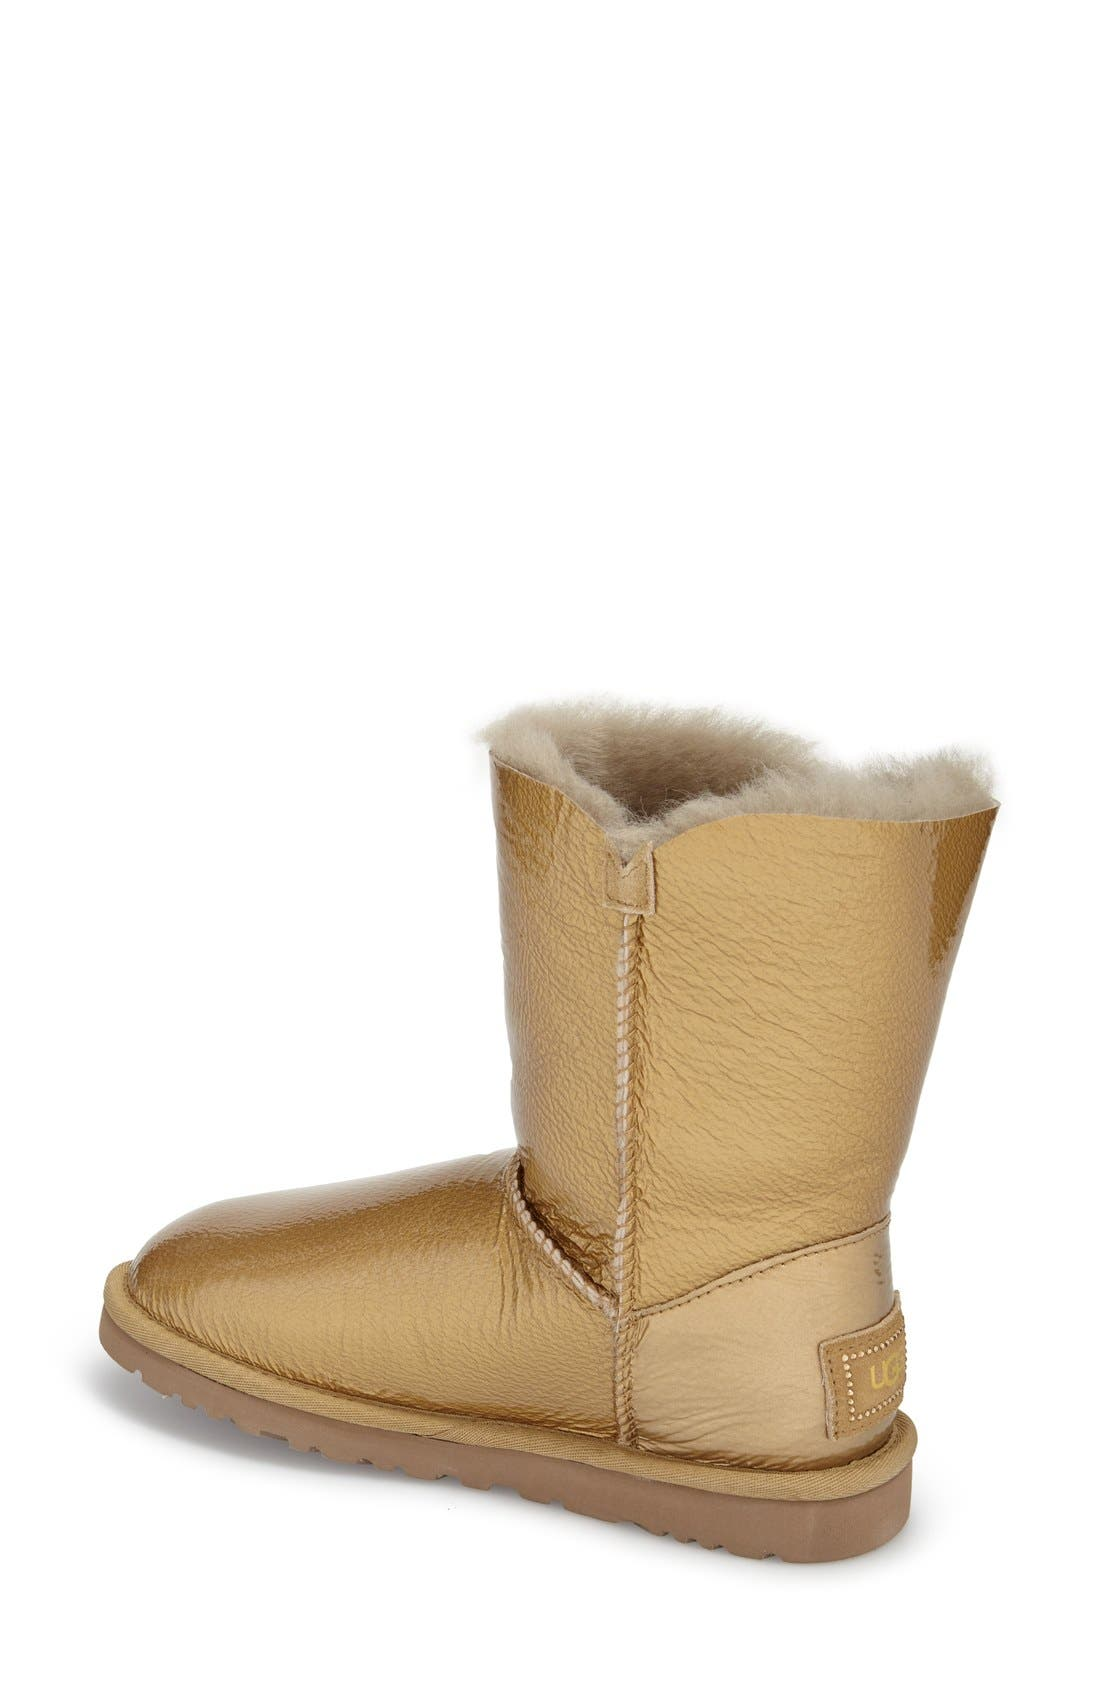 Alternate Image 2  - UGG® 'Bailey Button - Mirage' Water Resistant Boot (Women)